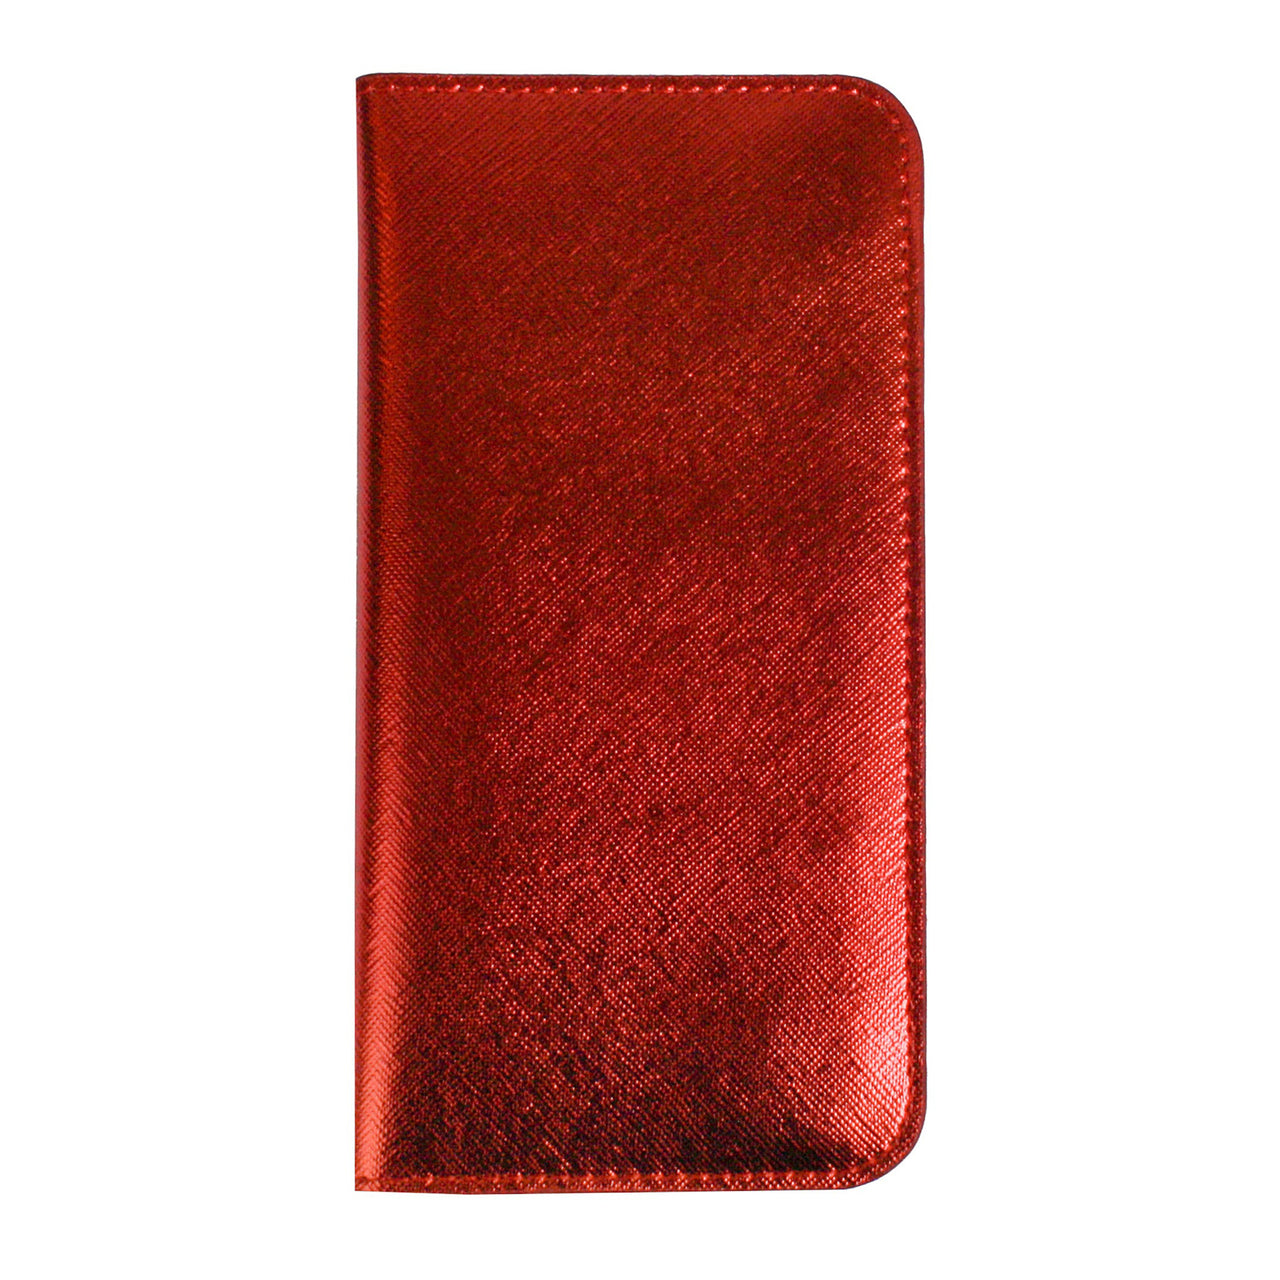 Magnetic Slim Wallet - Metallic Red